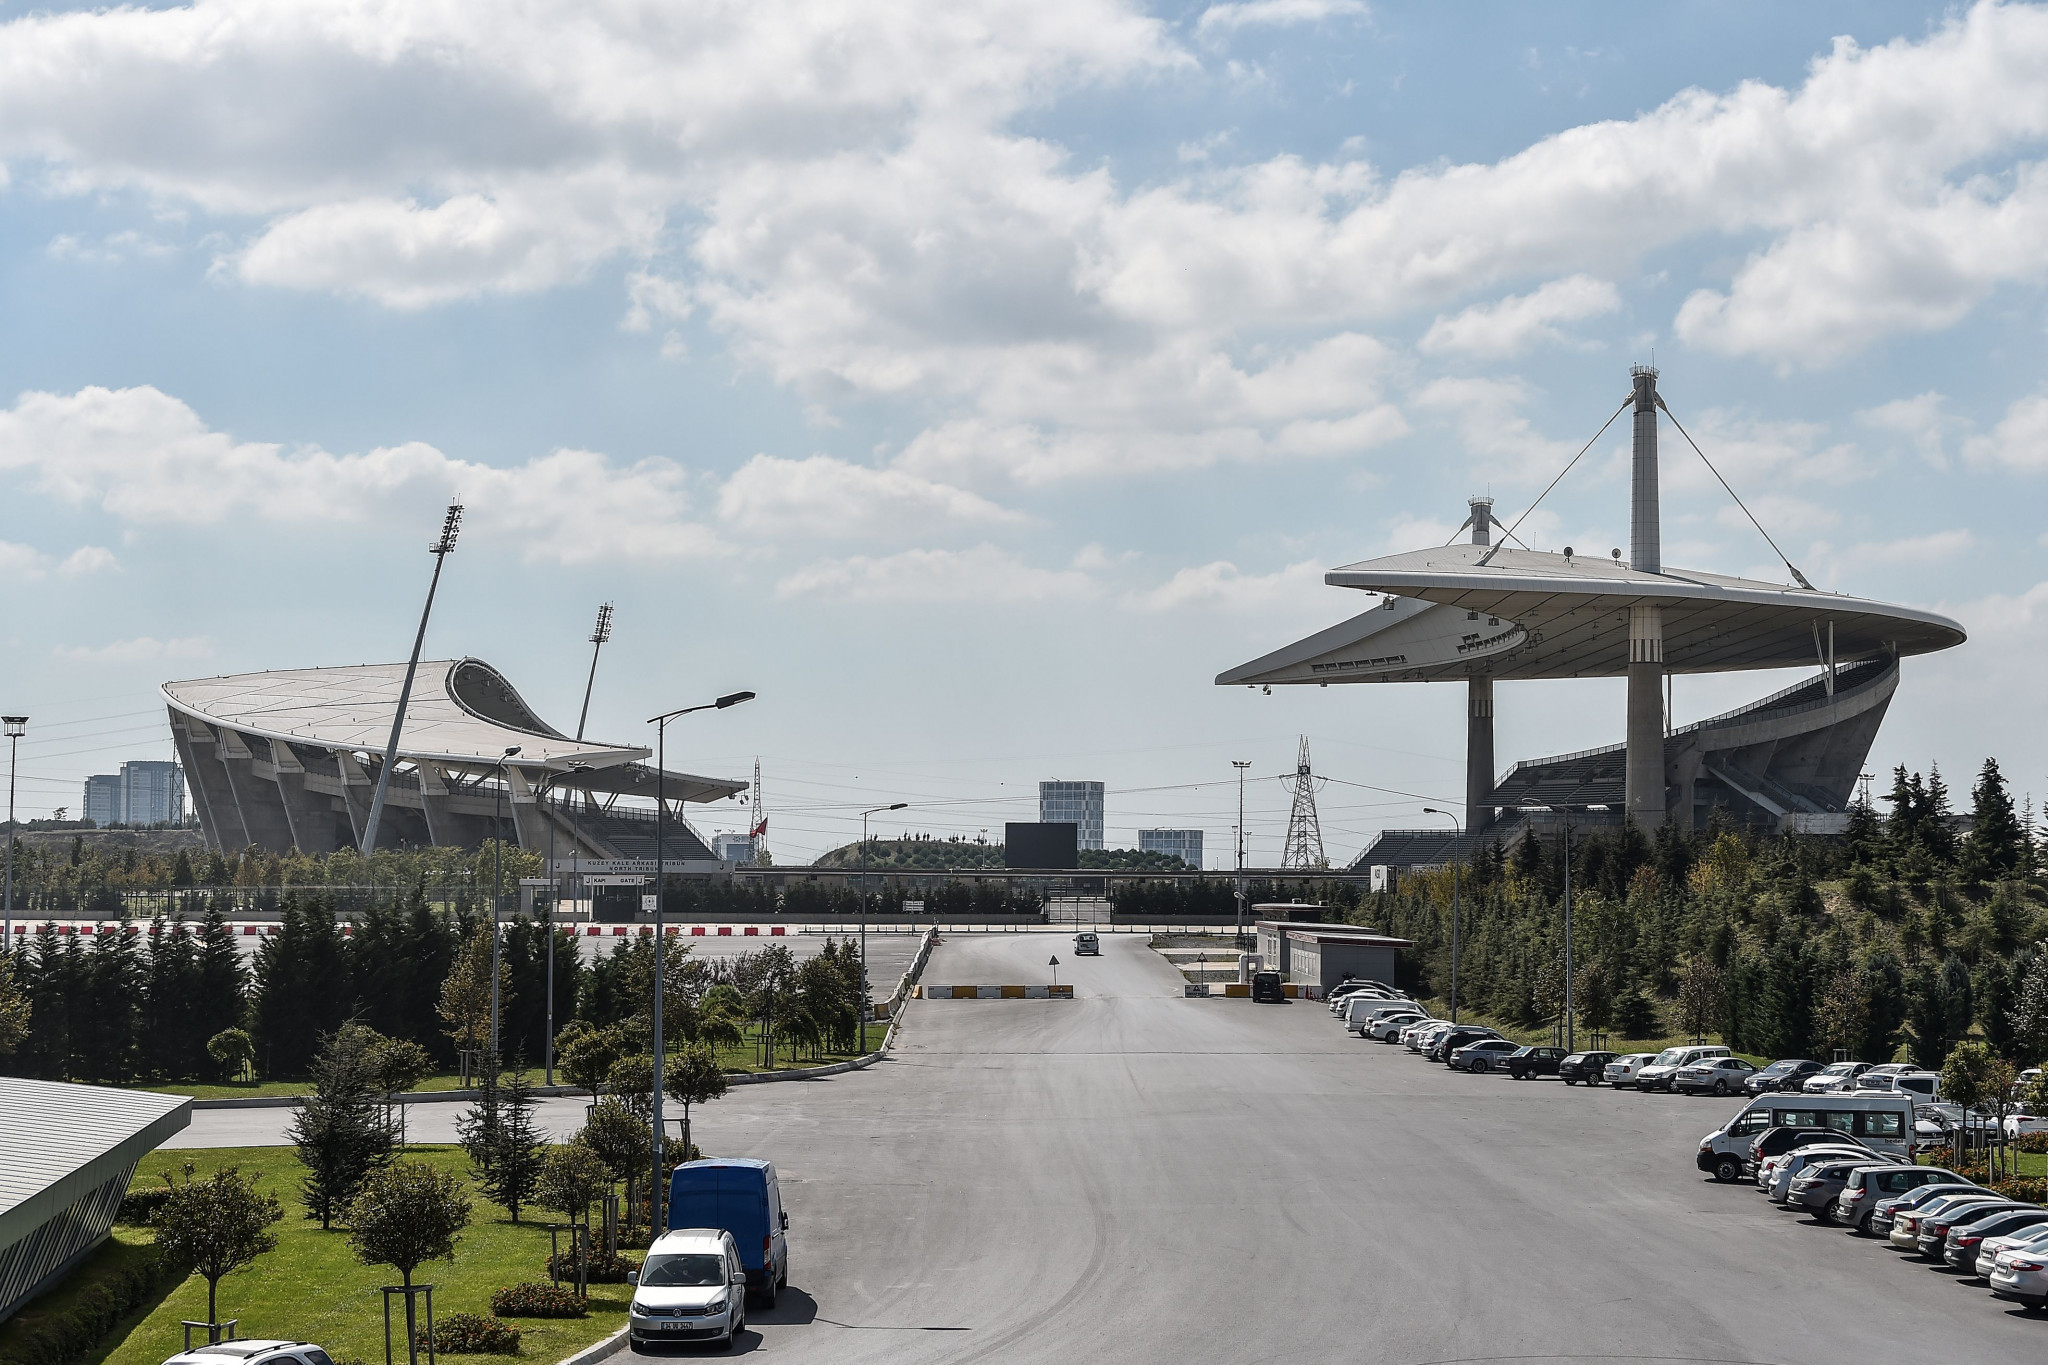 Istanbul awarded 2023 UEFA Champions League final after COVID-19 robs them of last two